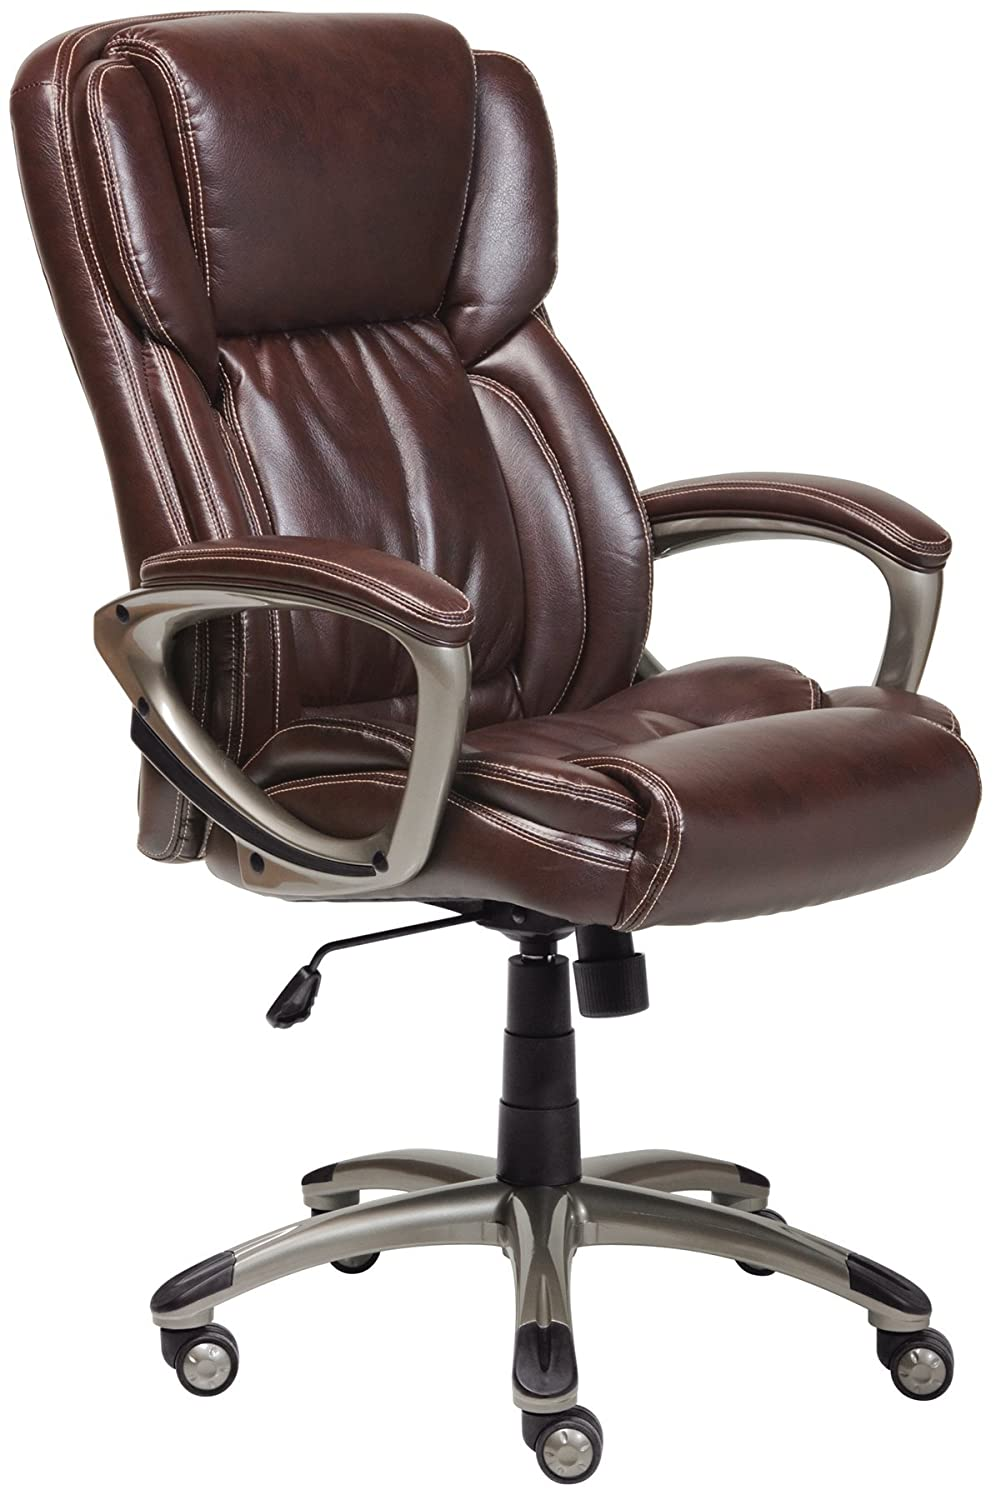 Serta at Home Executive Office Chair, Supple Bonded Leather, Biscuit Brown, 43520 Millwork Holdings Co. Inc.